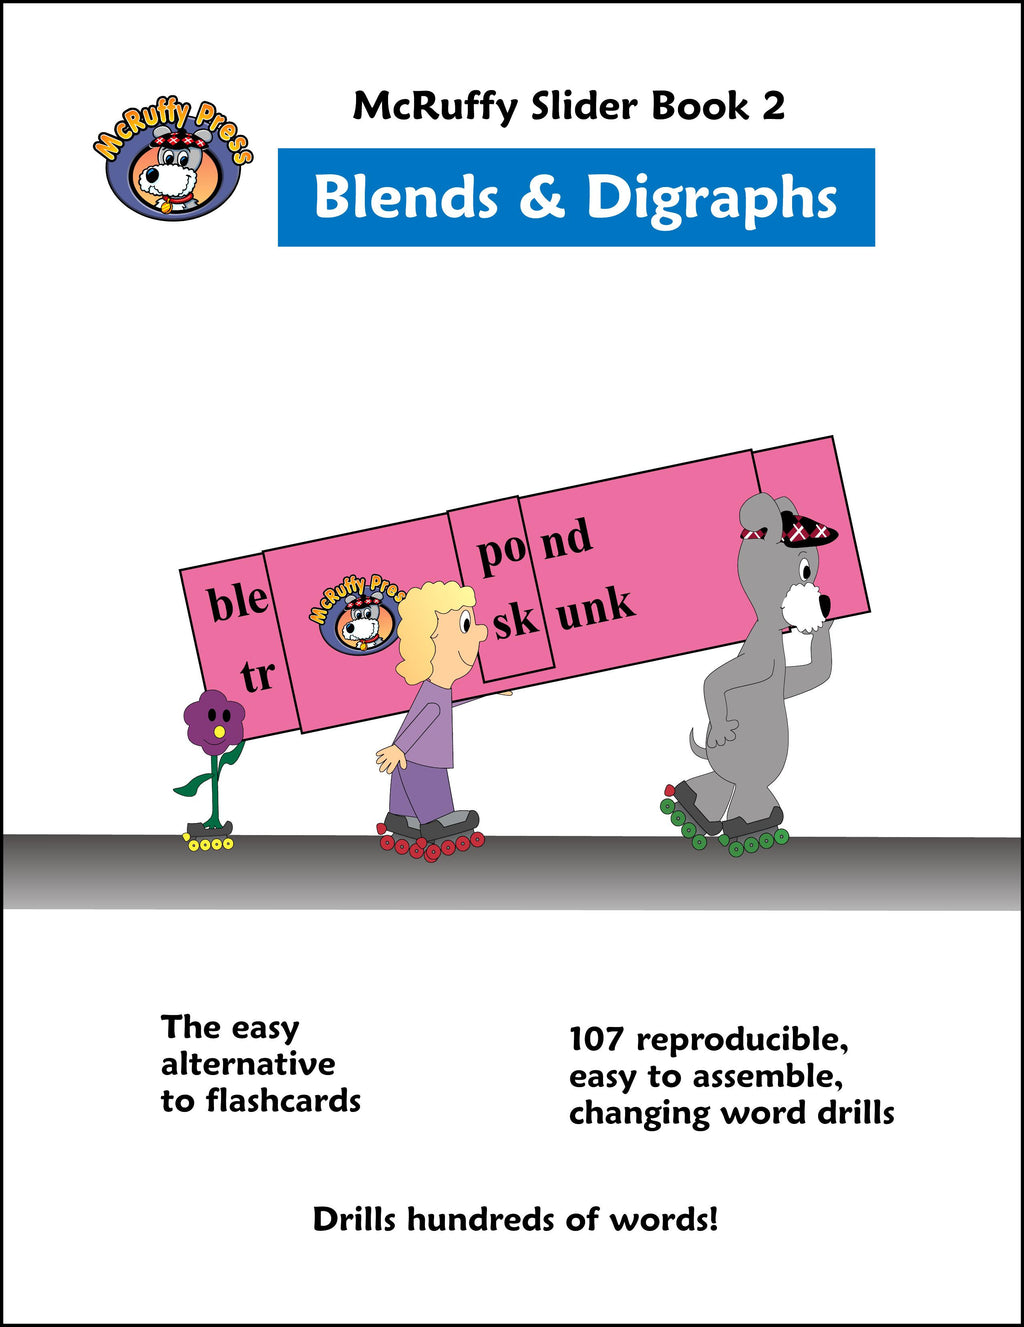 McRuffy Press Sliders - Blends and Digraphs (Book 2) - McRuffy Press